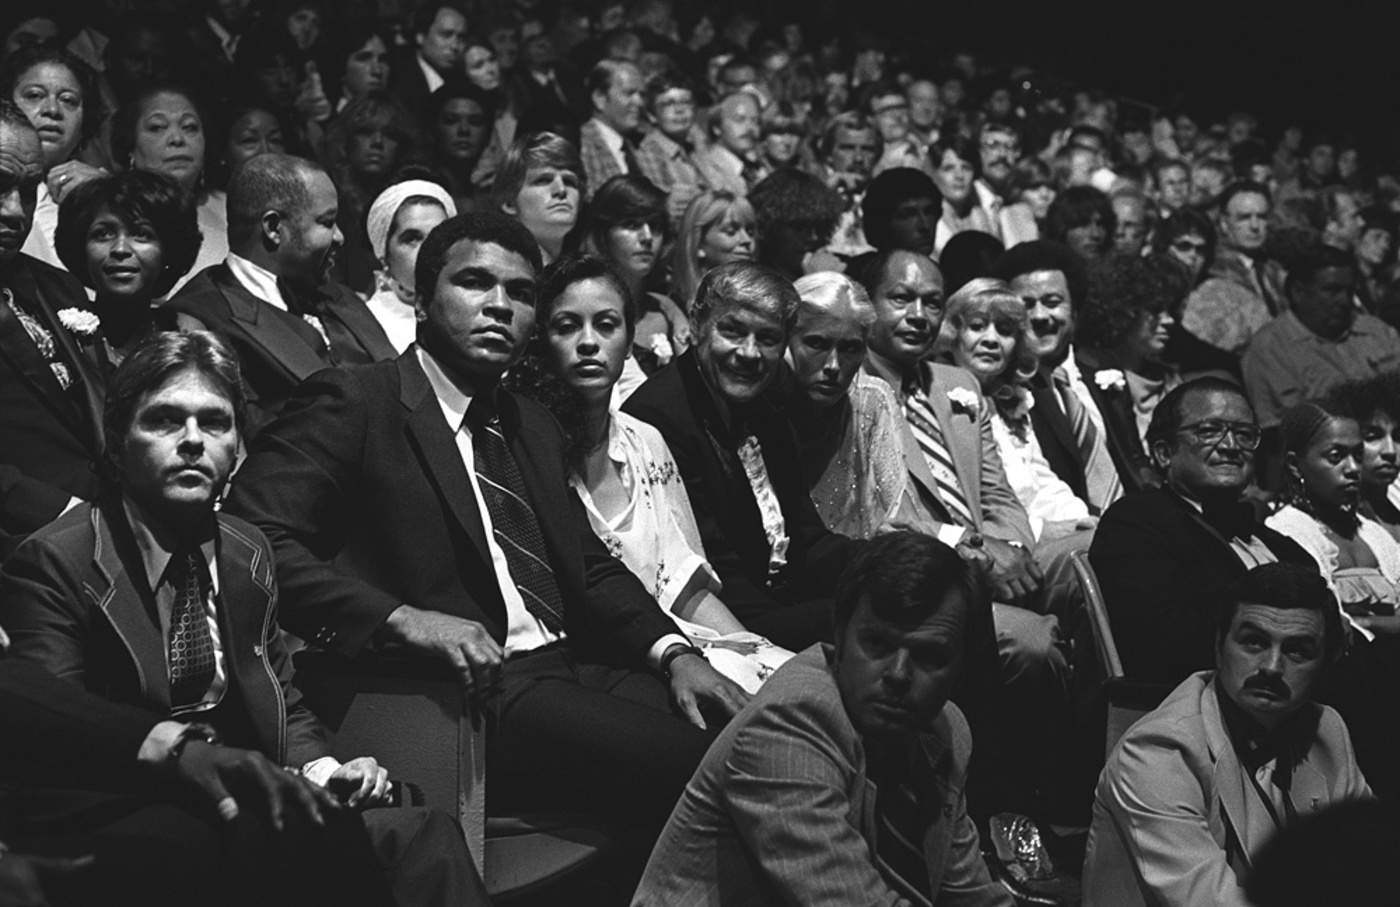 Muhammad Ali: KING ALI, 1979 - Muhammad Ali was the most recognizable human being on the planet earth. When he sat down in his seat at the Forum for this charity gig, all 18,400 people stood up to applaud him. I love the way he looks like a king in this photo. Seated with him is his wife Veronica, Jerry Buss, Mayor Bradley and his wife Ethel and Former Commerce Secretary Ron Brown.